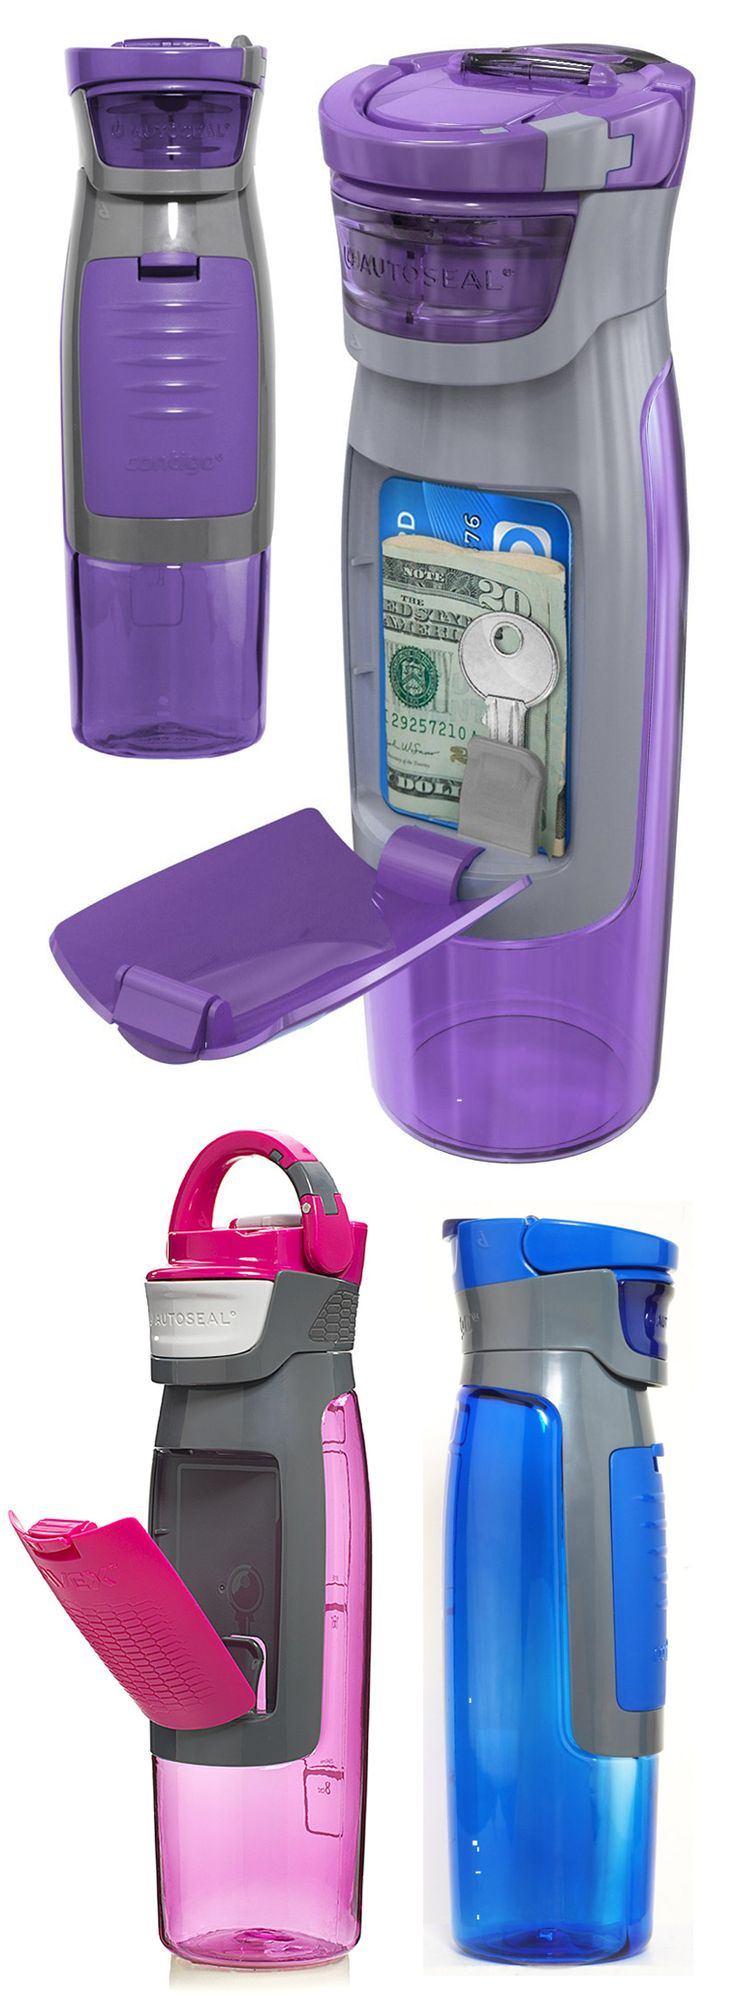 Kangaroo water bottle // has a storage compartment for keys, money etc. I NEED this! Perfect for working out, gym, yoga.